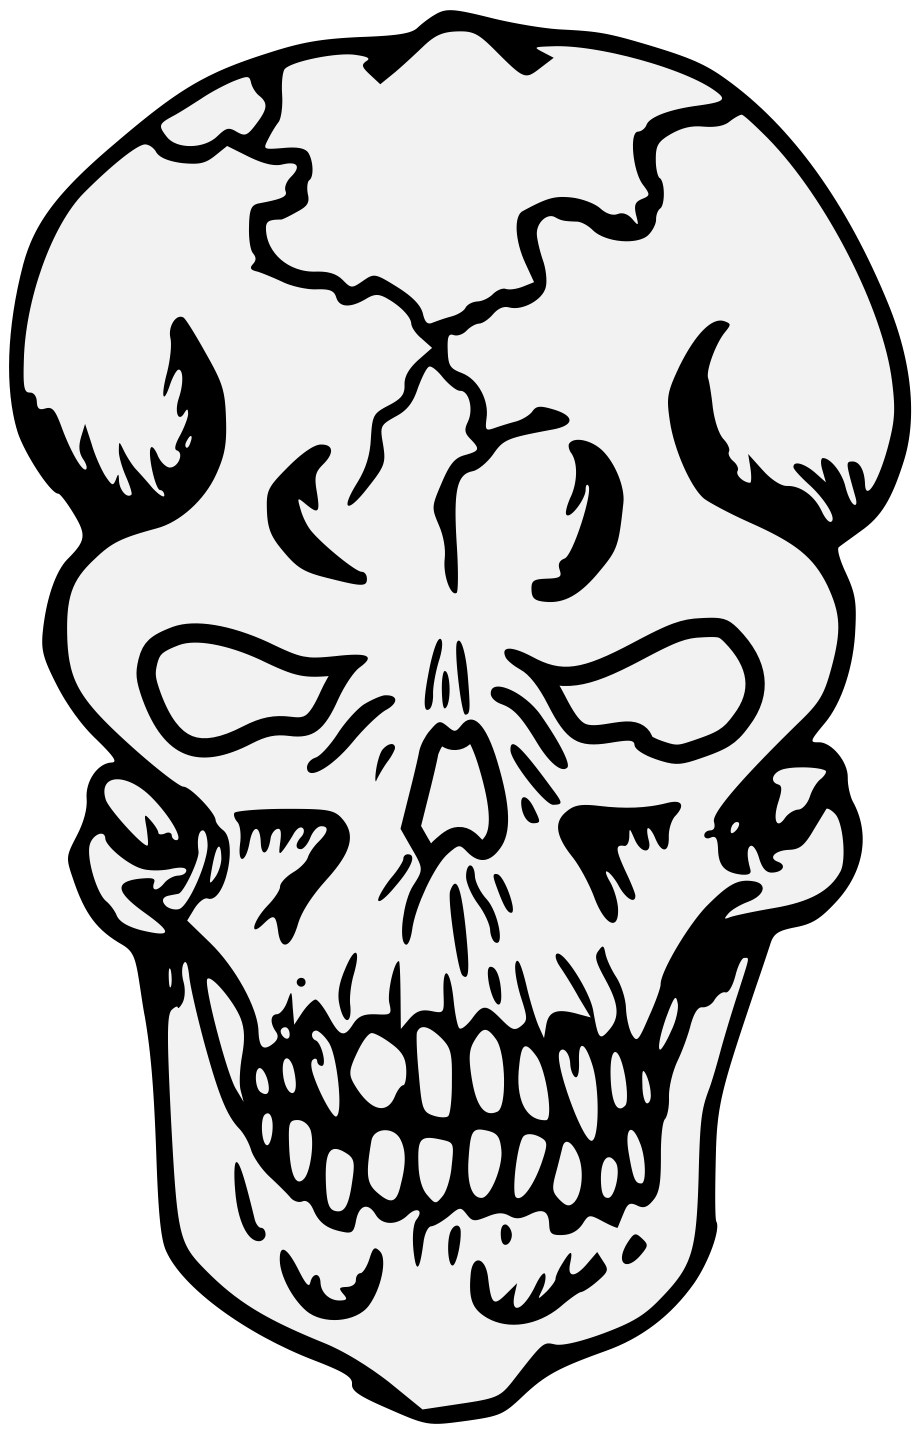 transparent download Skull heraldic art pdf. Bones clipart traceable.